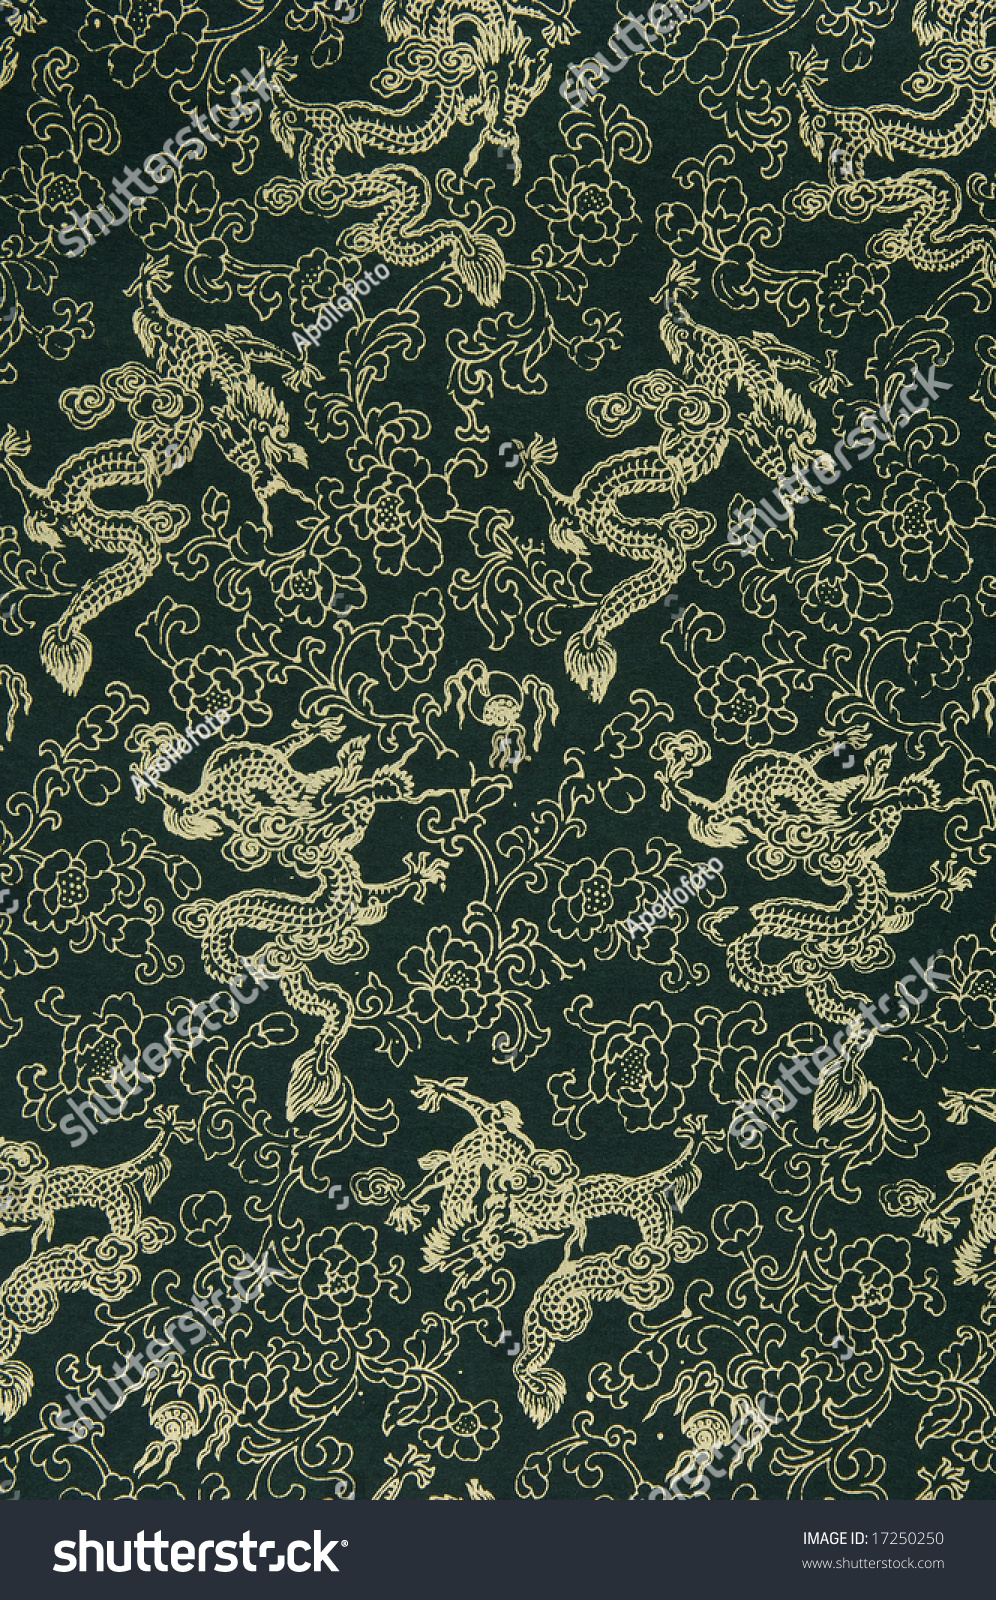 chinese dragon texture - photo #5